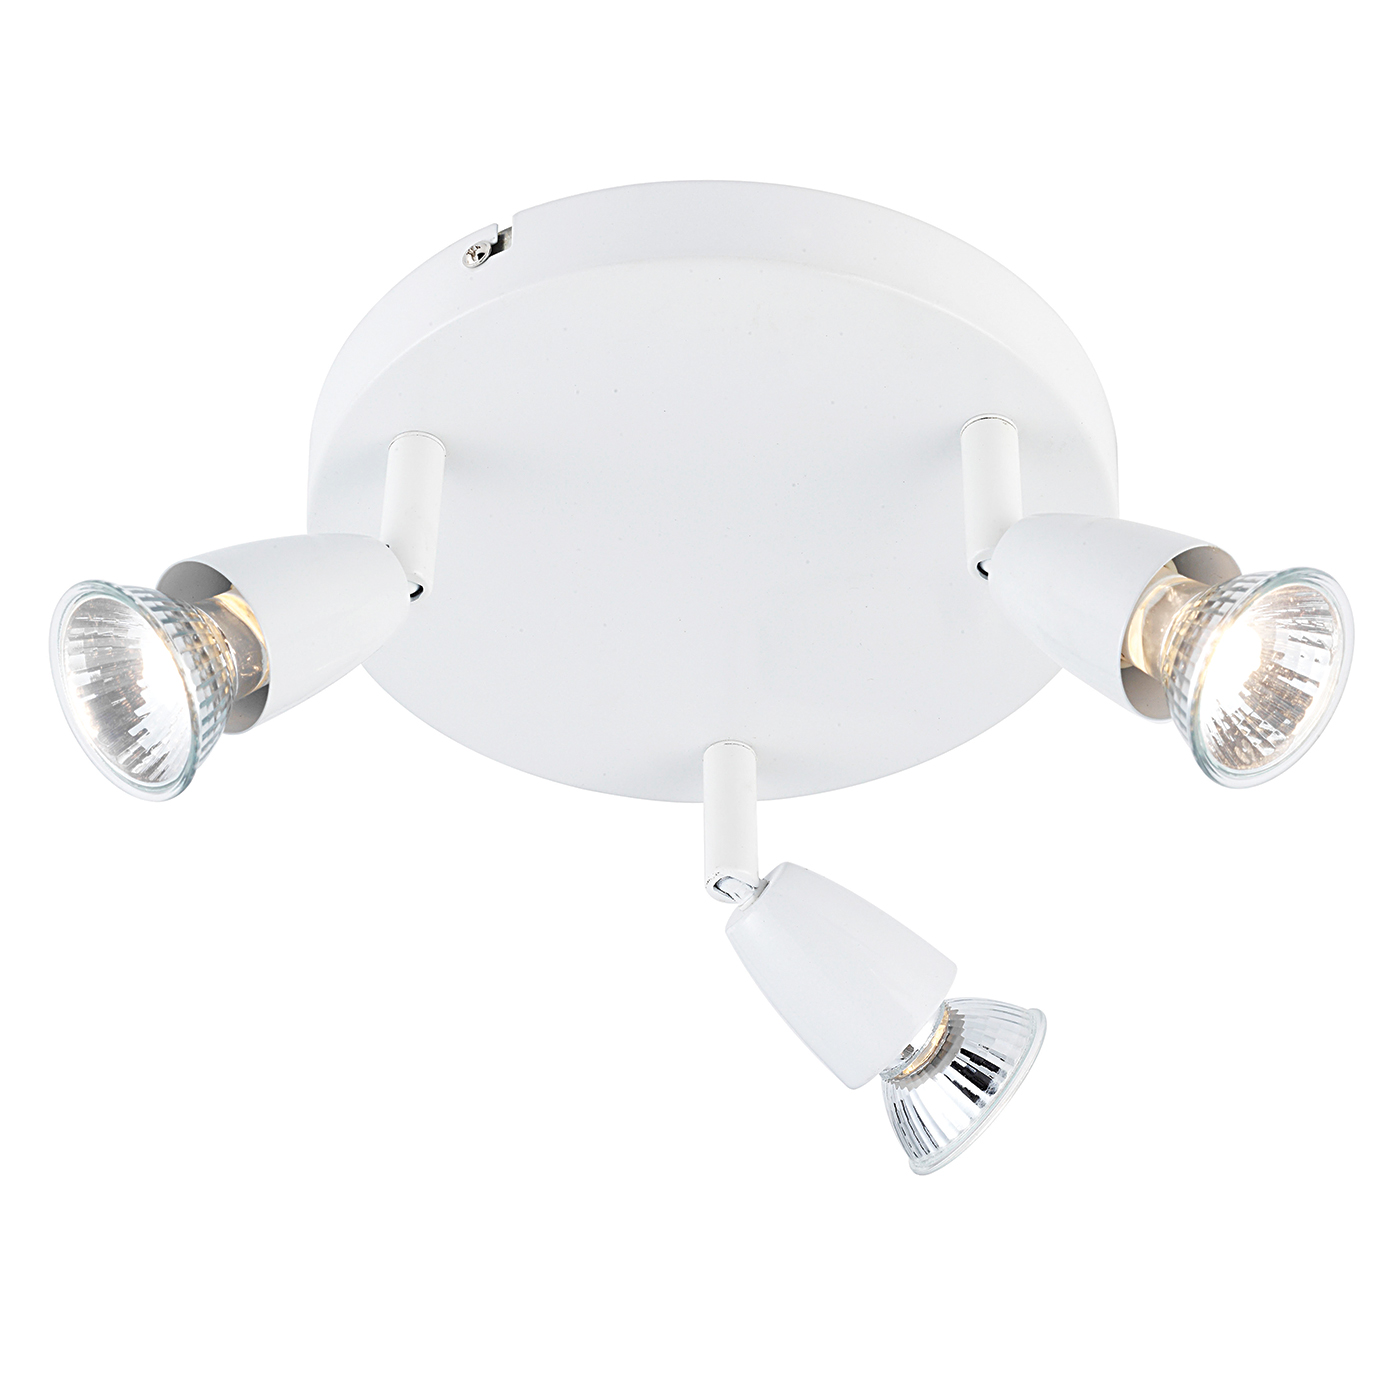 Endon Amalfi ceiling spotlight round 3x 50W Gloss white Thumbnail 1